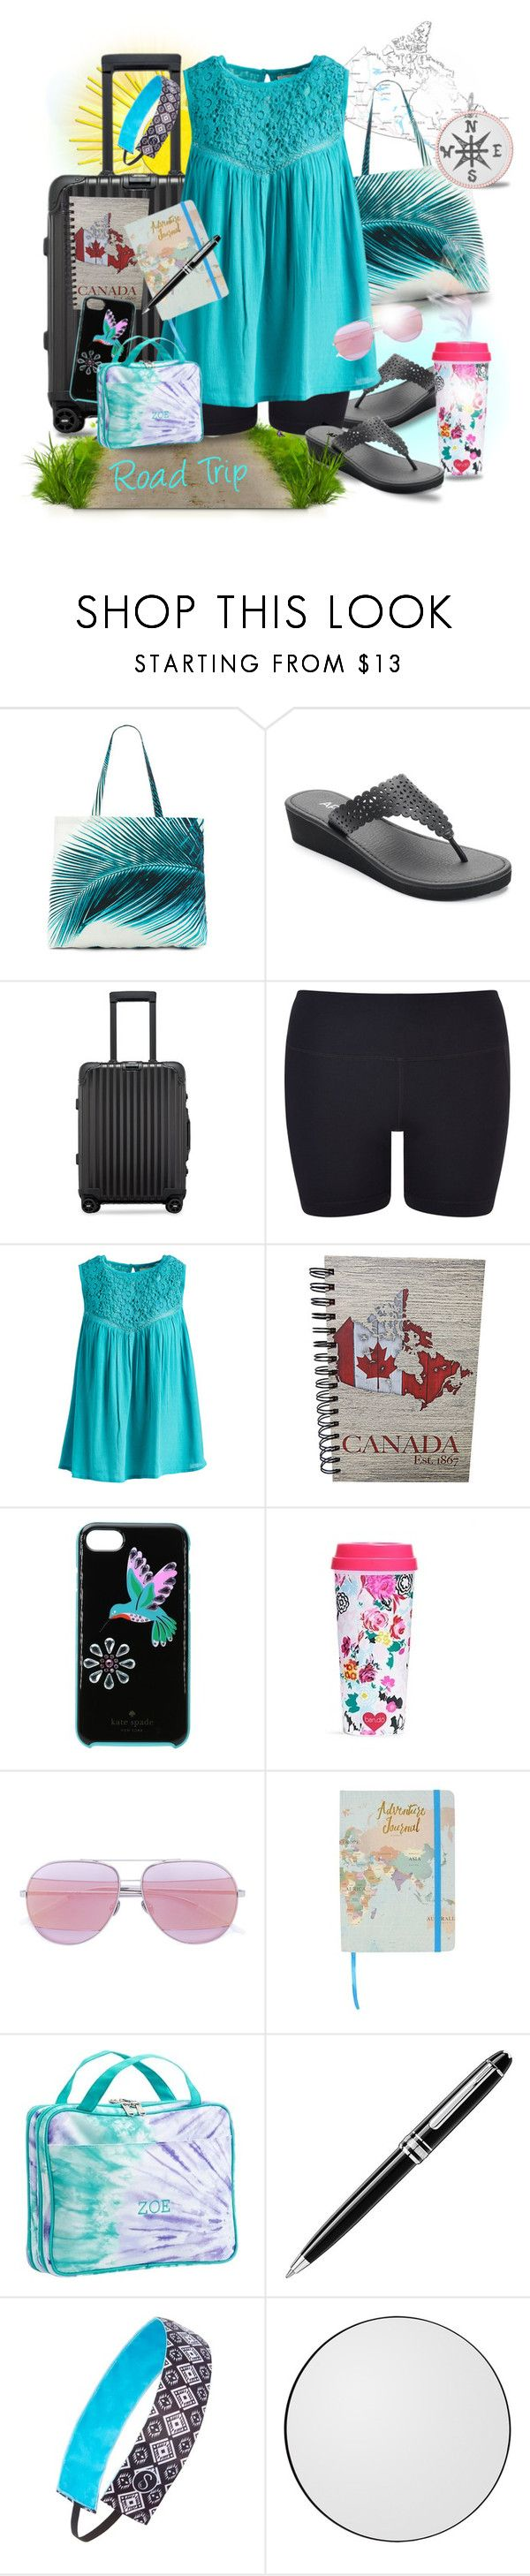 """""""Pure Comfort"""" by runners ❤ liked on Polyvore featuring Amuse Society, Apt. 9, Rimowa, Vimmia, Jennifer & Grace, Kate Spade, ban.do, Christian Dior, Montblanc and Sweaty Bands"""